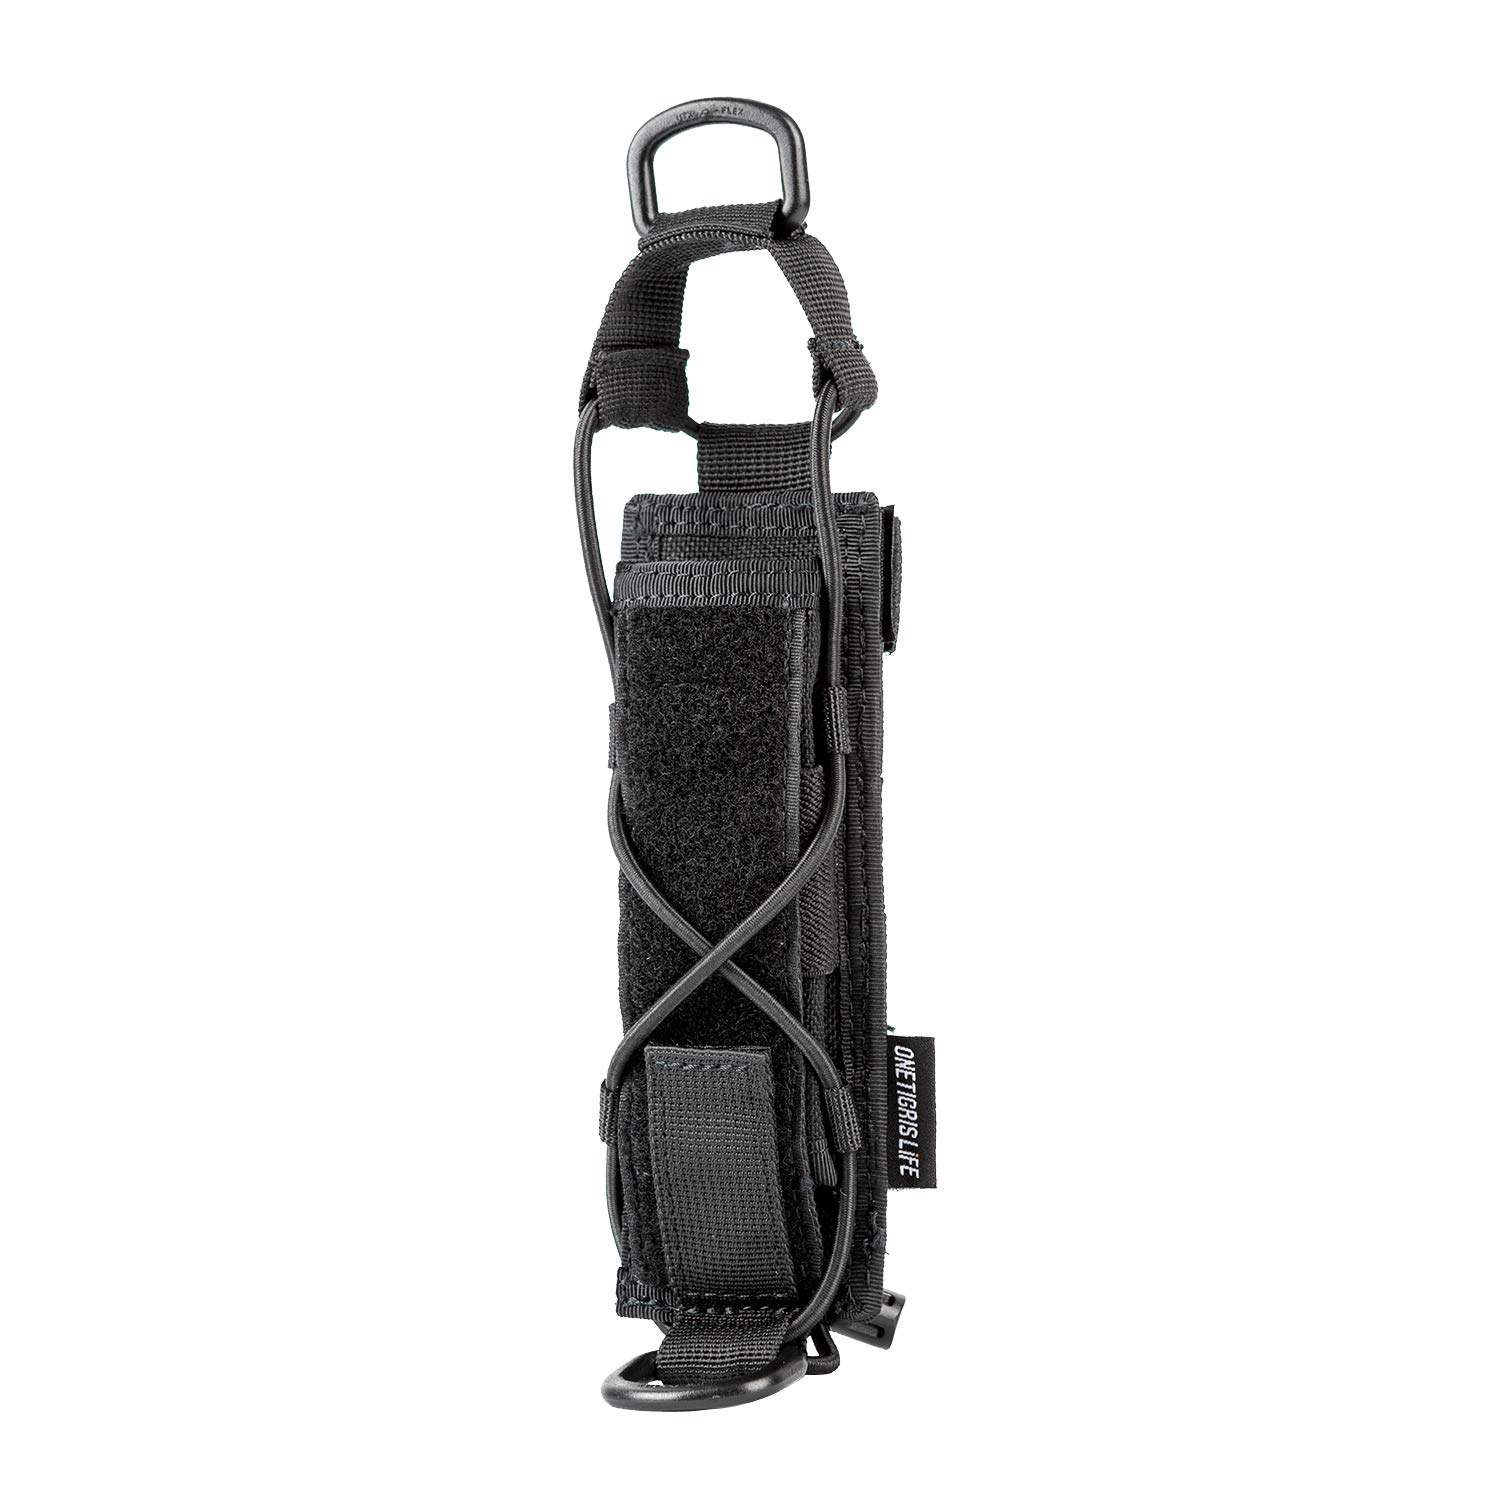 OneTigris Tactical Flashlight Holster Open-top Holder Pouch for Torch Linear Hand Tool with MOLLE Strap for Vertical & Horizontal Carrying (Black) by OneTigris